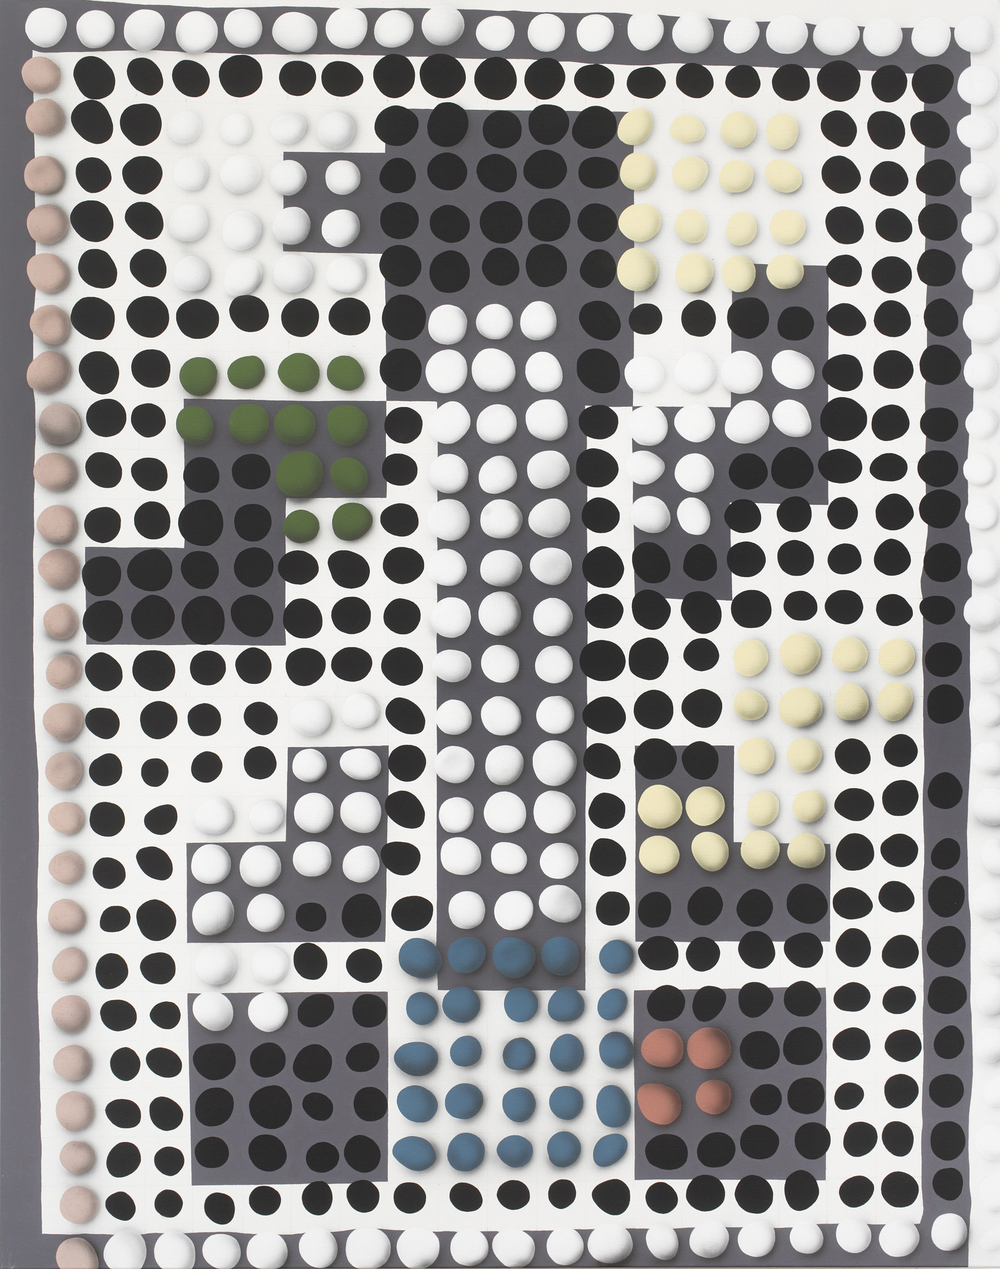 Vasarely, 2010, acrylic on canvas, 240 x 190 cm